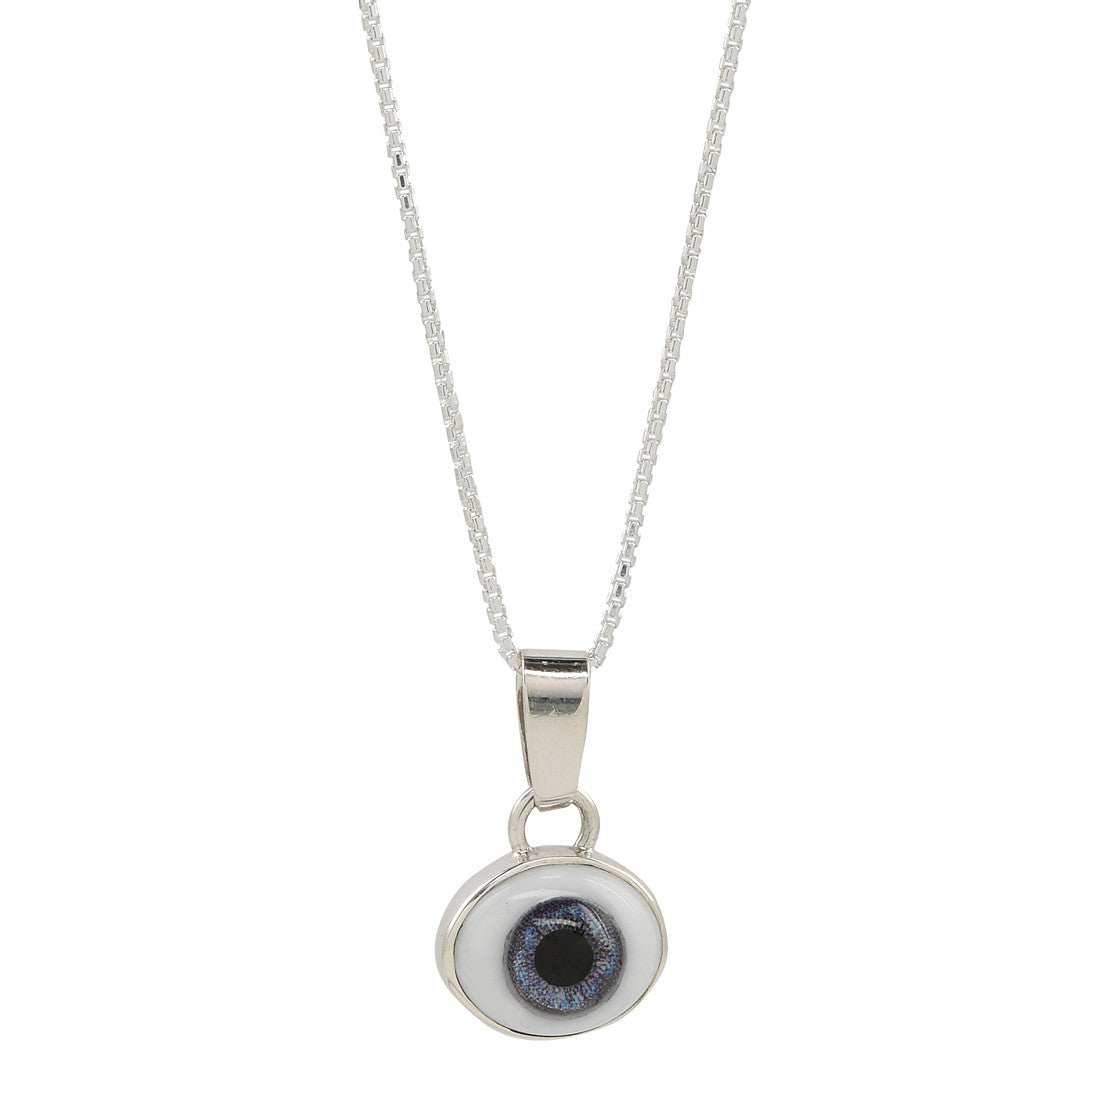 violet eye against evil necklace in sterling silver .925